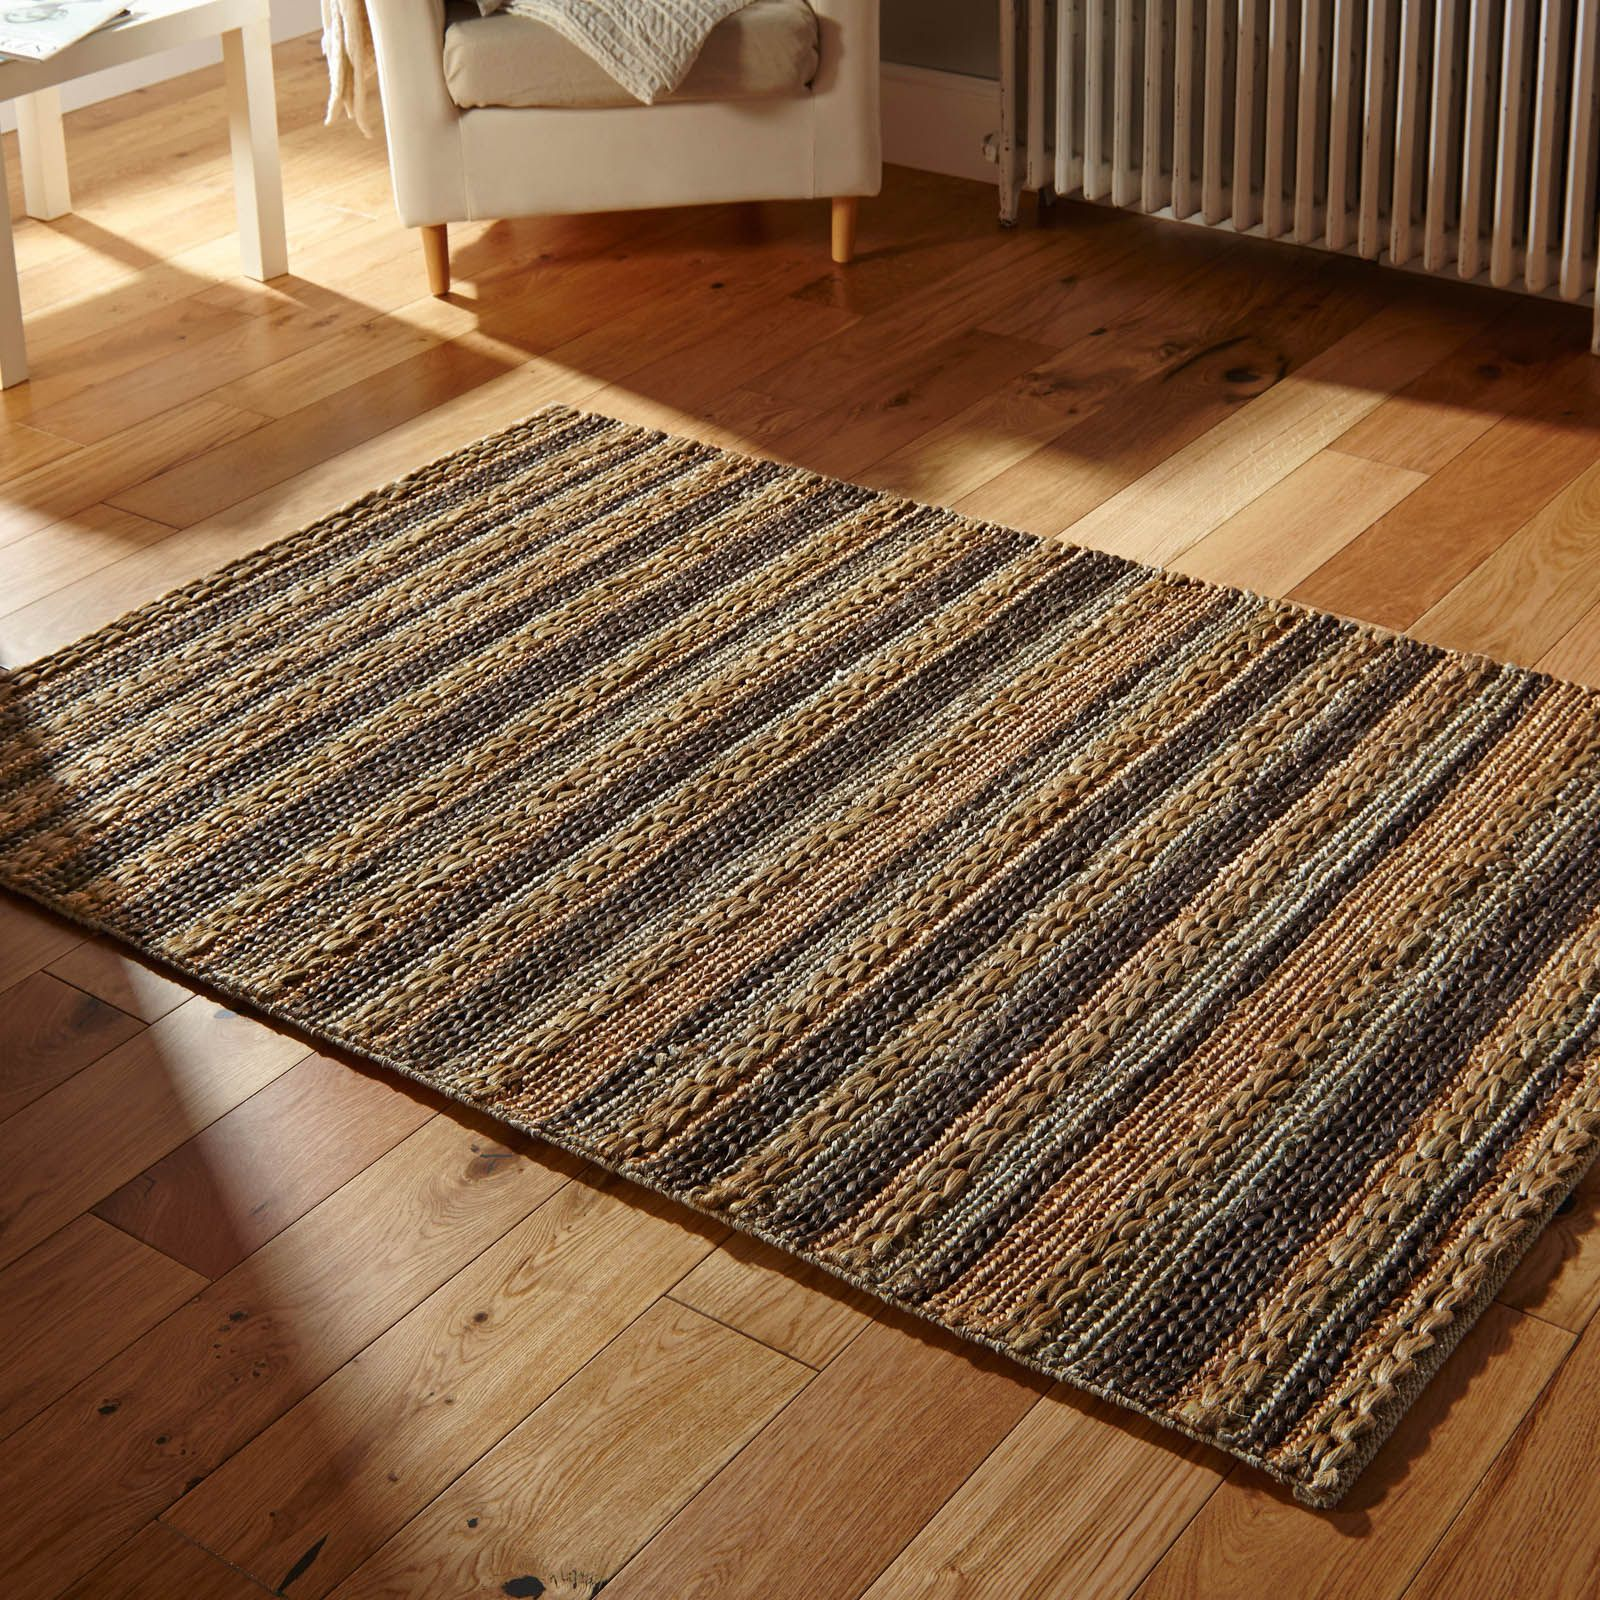 Captivating Jute Rugs Can Be Used Around The Home But Are Popular Choices For  Conservatories, Kitchen/dining Areas And Hallways. Choose From Three  Rectangular Sizes ...